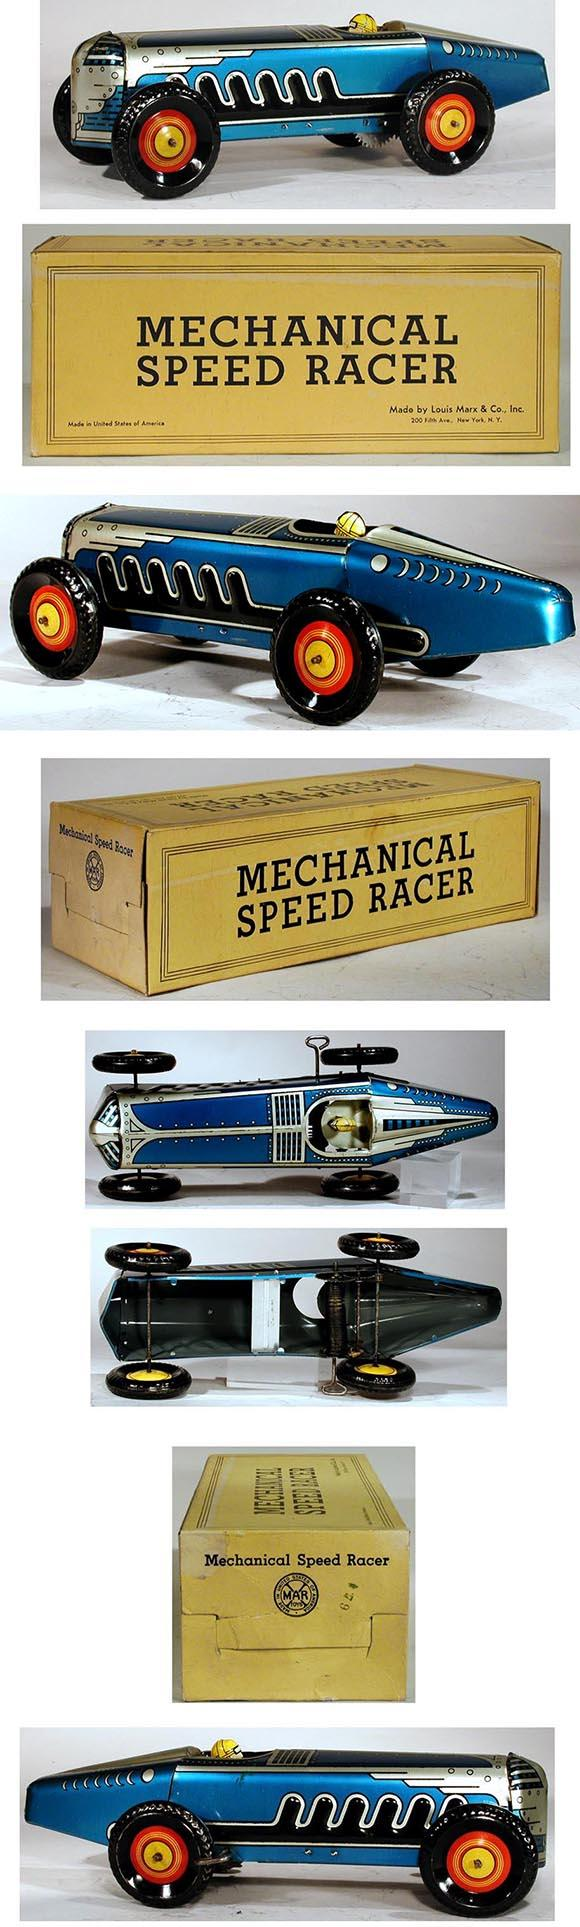 1939 Marx, Mechanical Speed Racer in Original Box